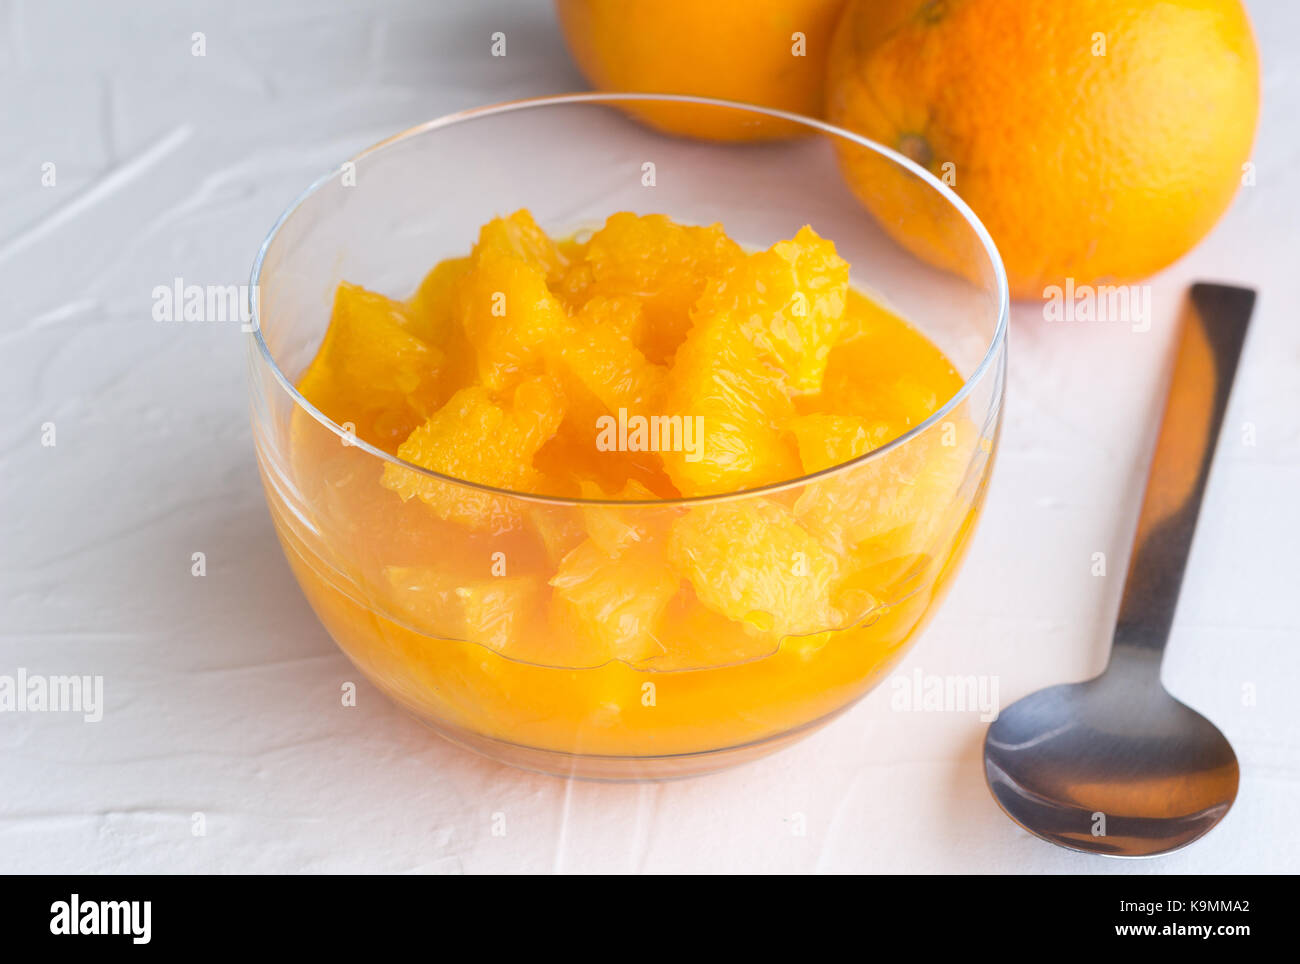 Fresh orange fruit slices with juice in glass dessert bowl on white rustic surface background and two whole oranges - Stock Image